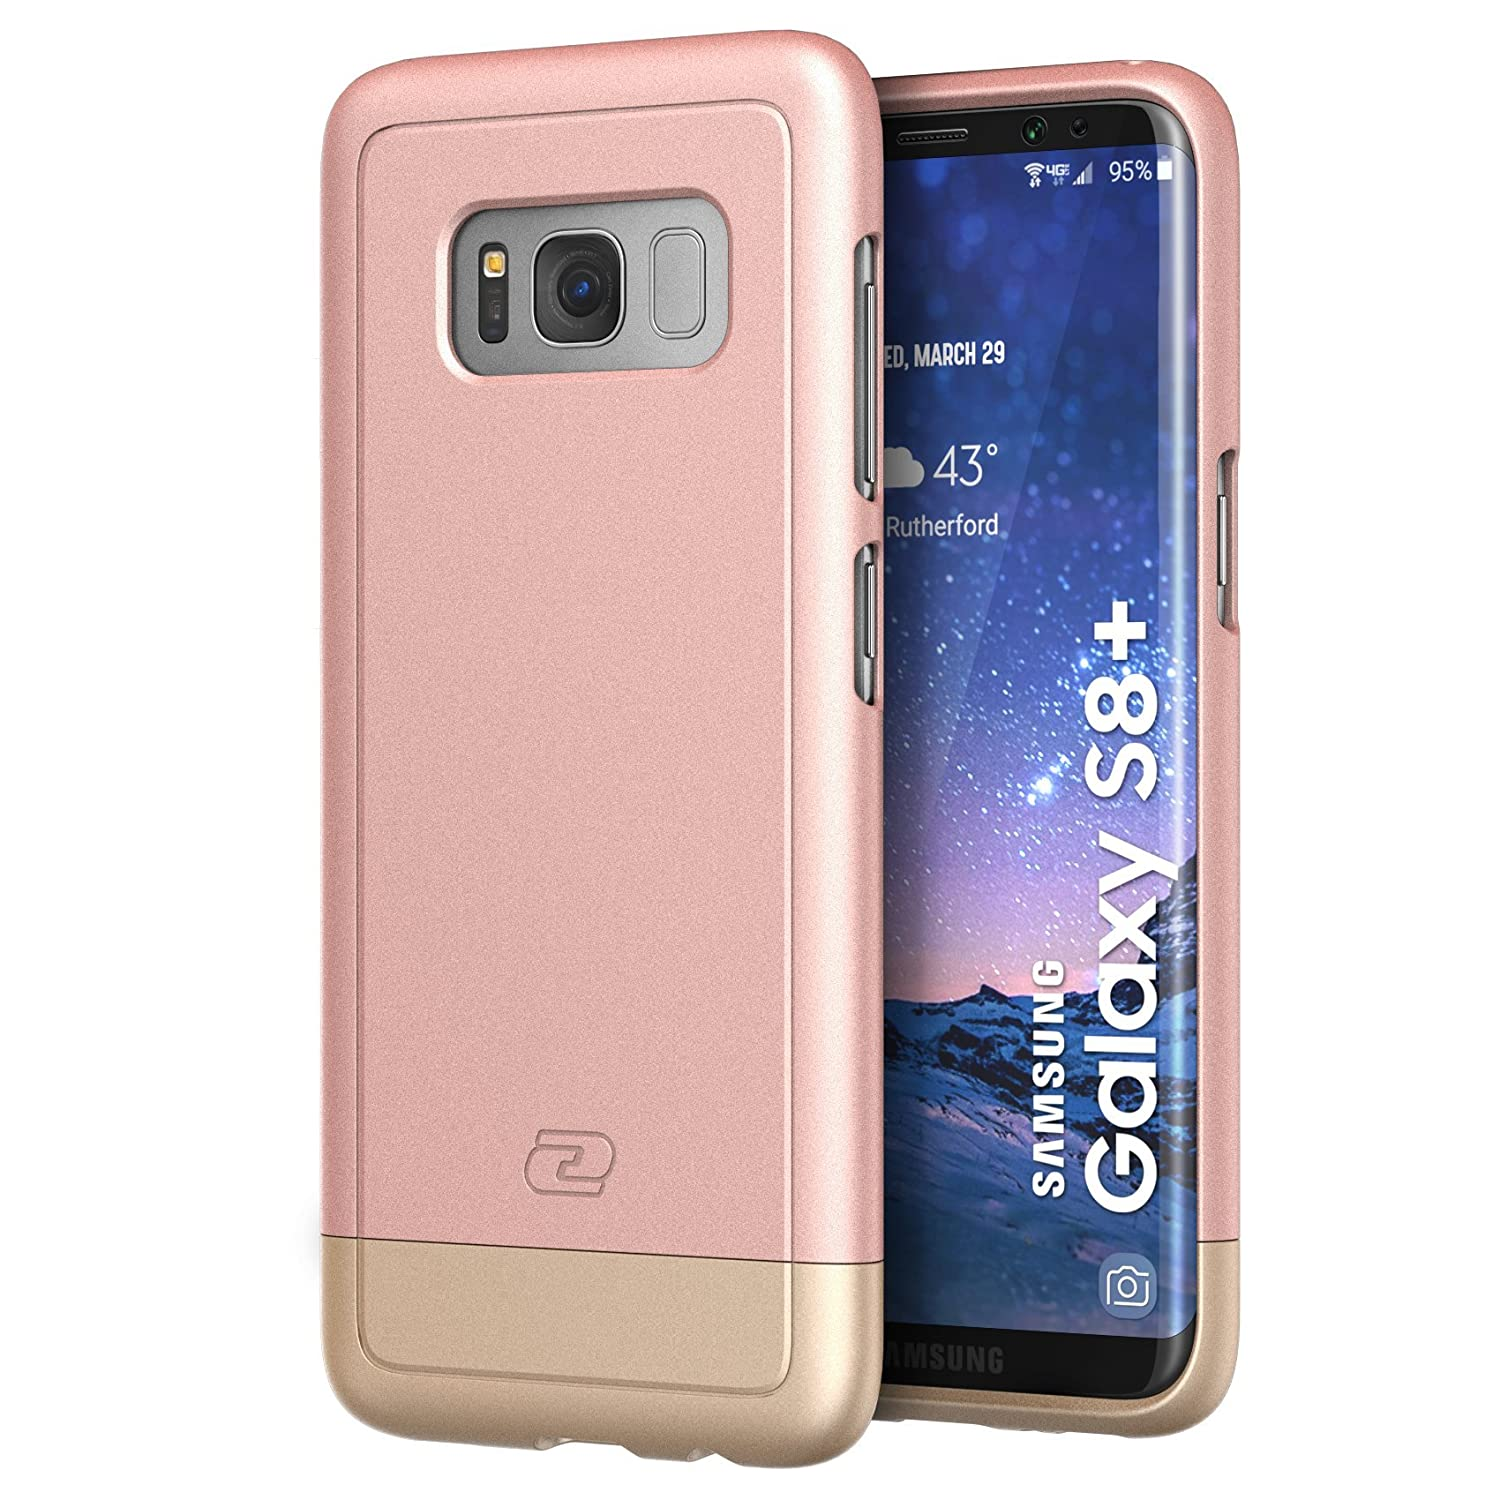 low priced 0cf00 ce263 Galaxy S8 Plus Case Rose Gold - Encased (SlimShield Armor) Protective Slim  Thin Grip Phone Cases for Samsung Galaxy S8+ (Rose Gold)